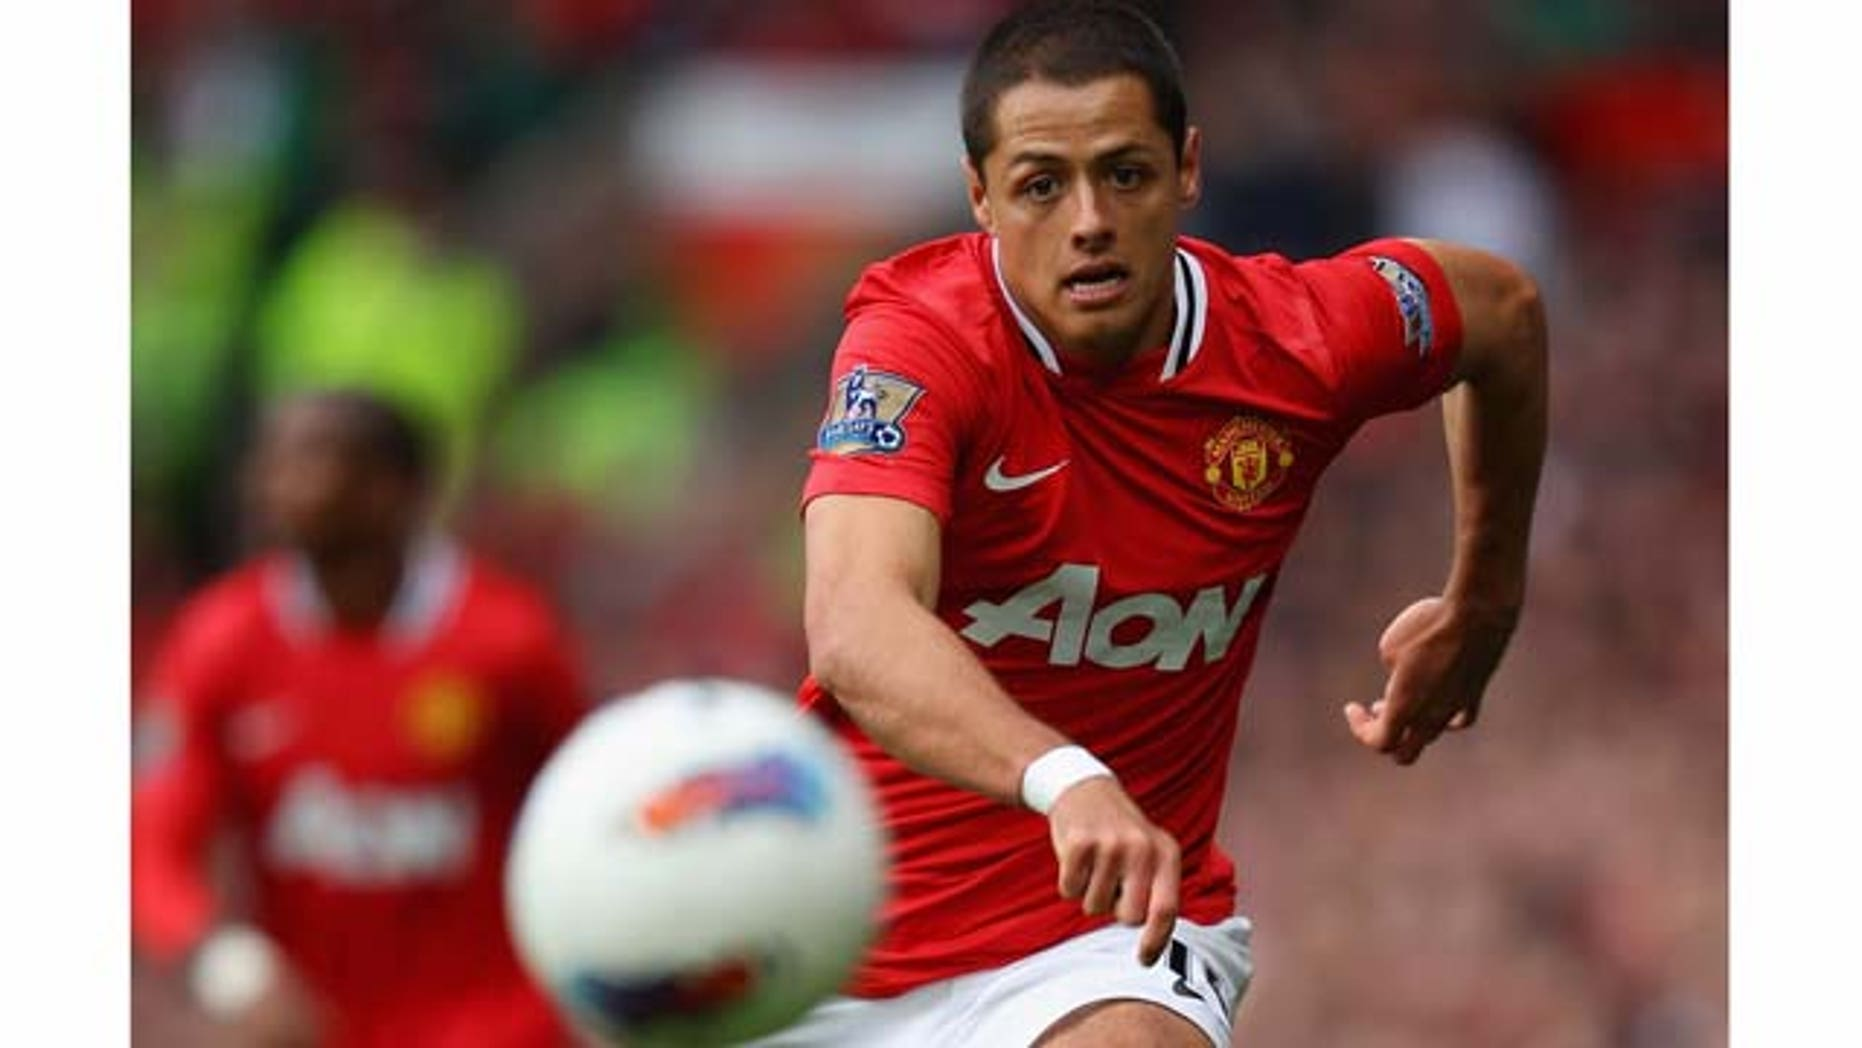 MANCHESTER, ENGLAND - AUGUST 28:  Javier Hernandez of Manchester United chases the ball during the Barclays Premier League match between Manchester United and Arsenal at Old Trafford on August 28, 2011 in Manchester, England.  (Photo by Alex Livesey/Getty Images)